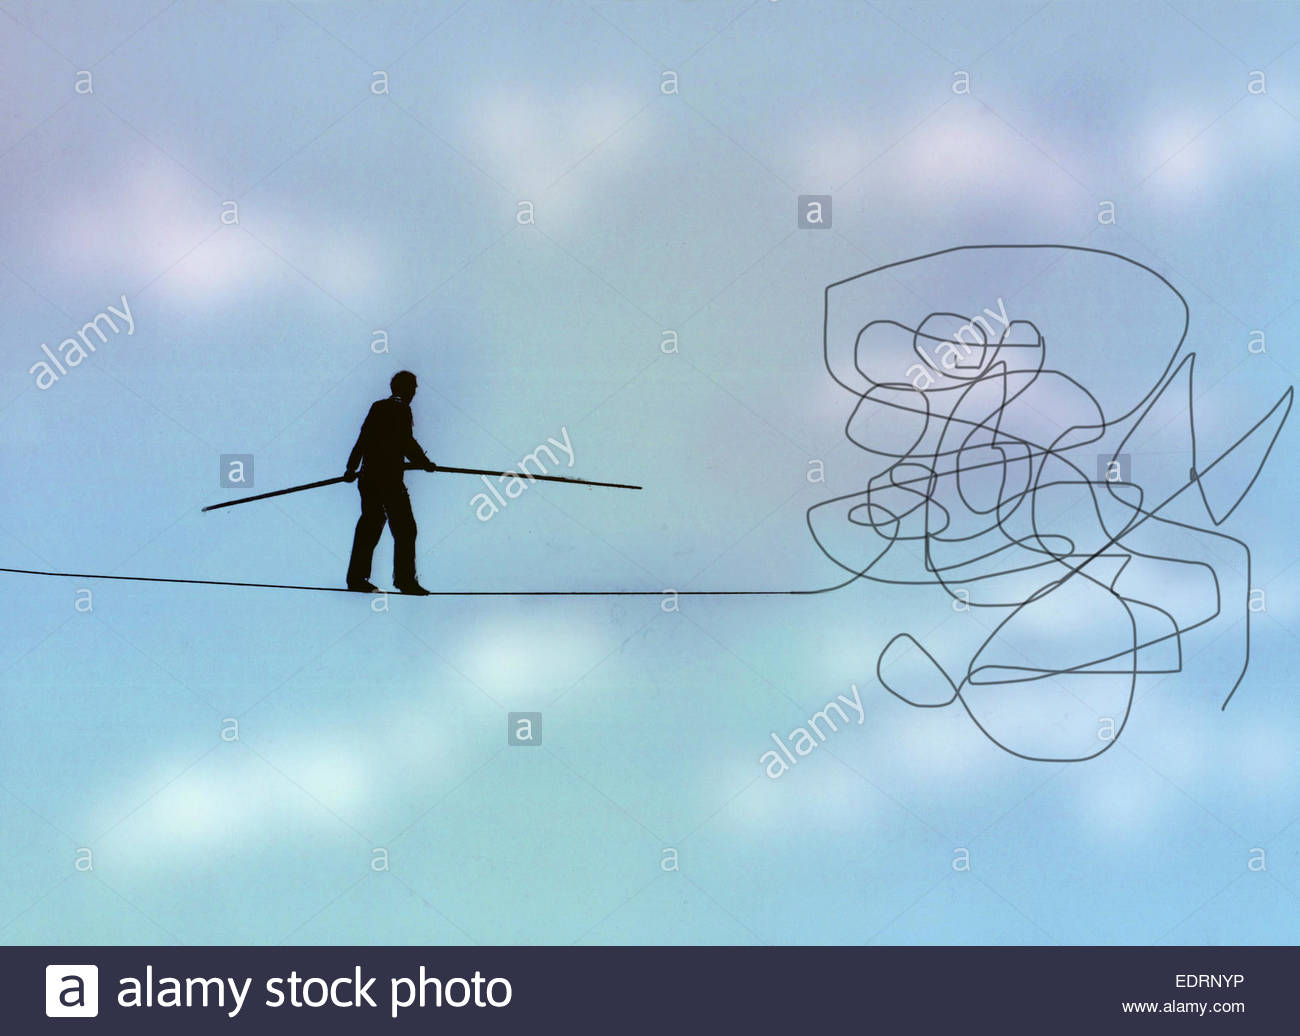 Man approaching knot on tangled tightrope - Stock Image